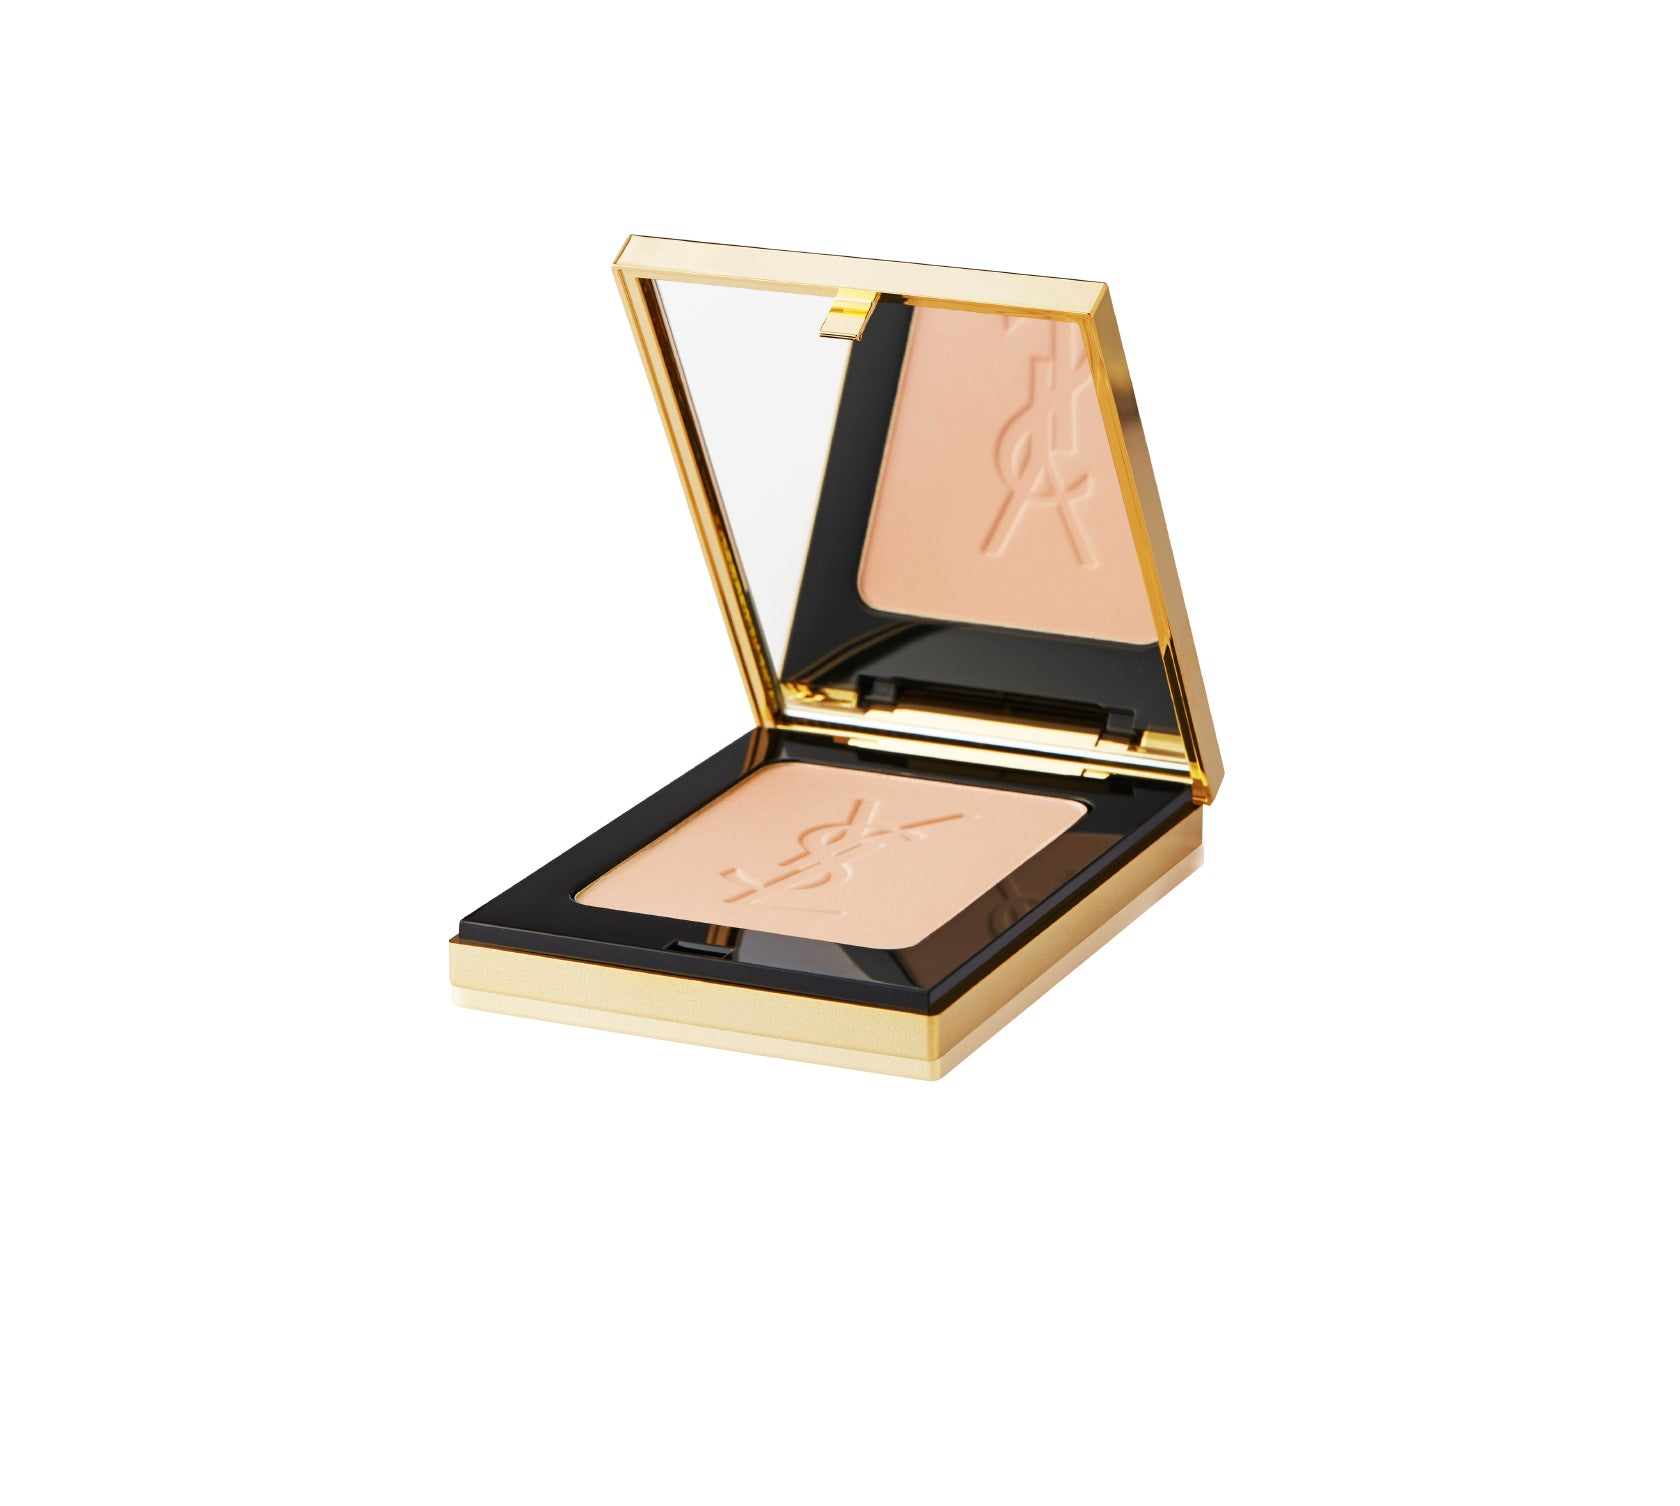 Matt and Radiant Pressed Powder